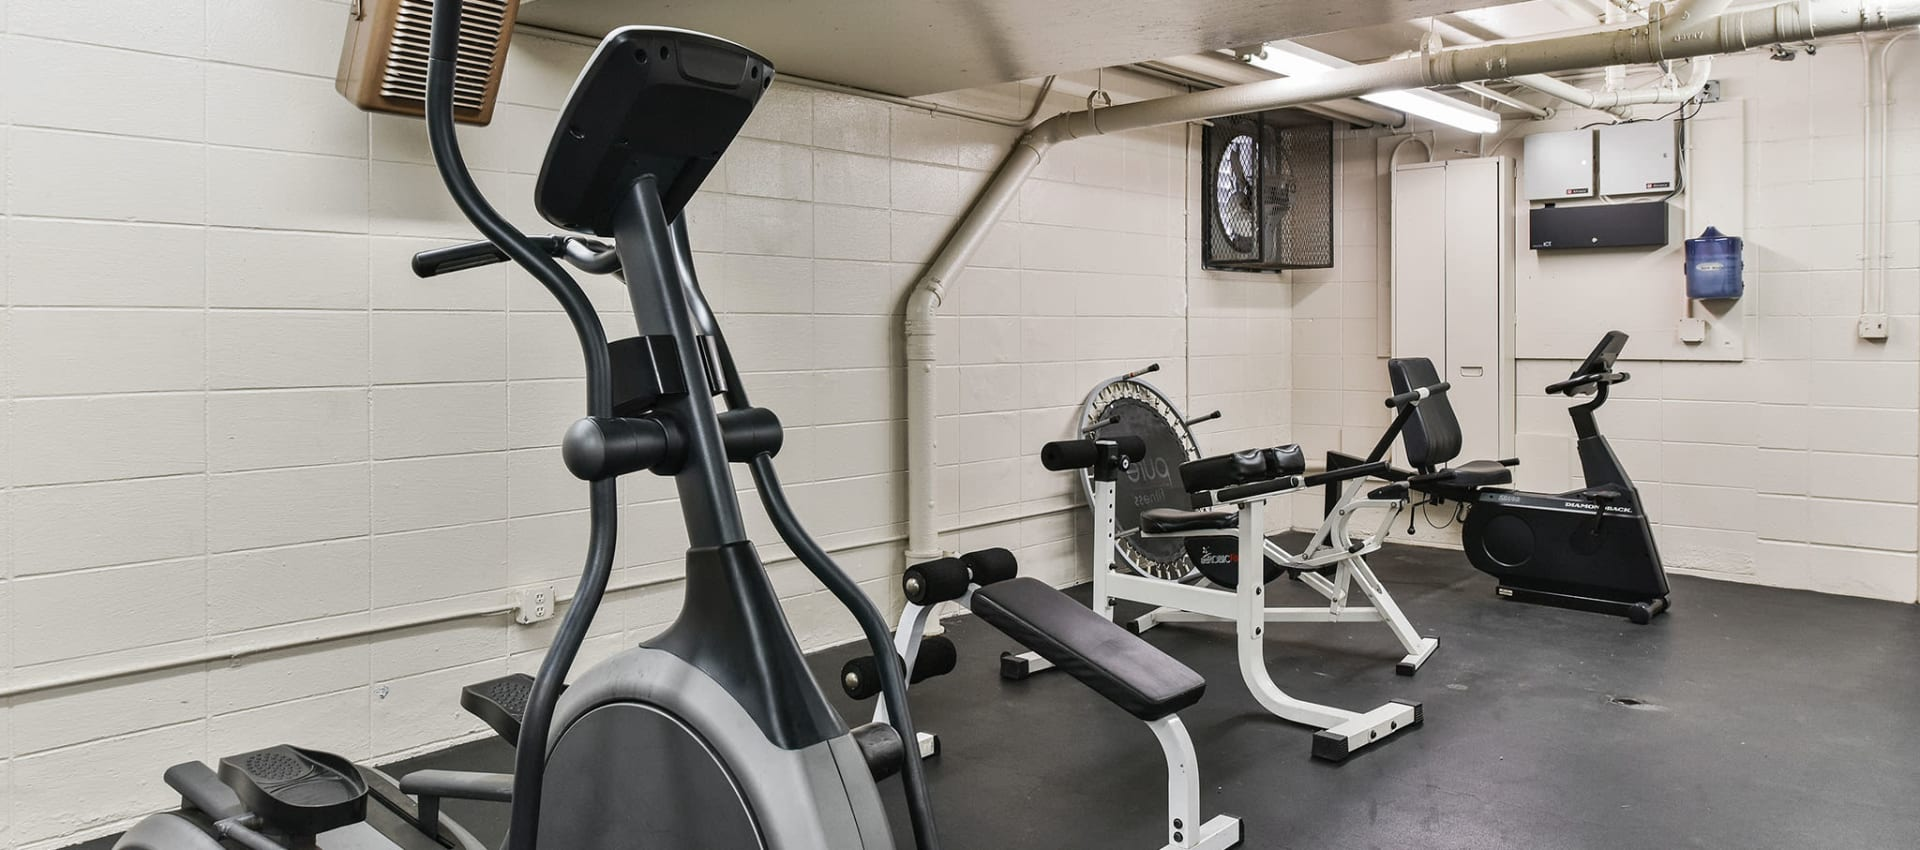 Fitness center at apartments in Alameda, CA